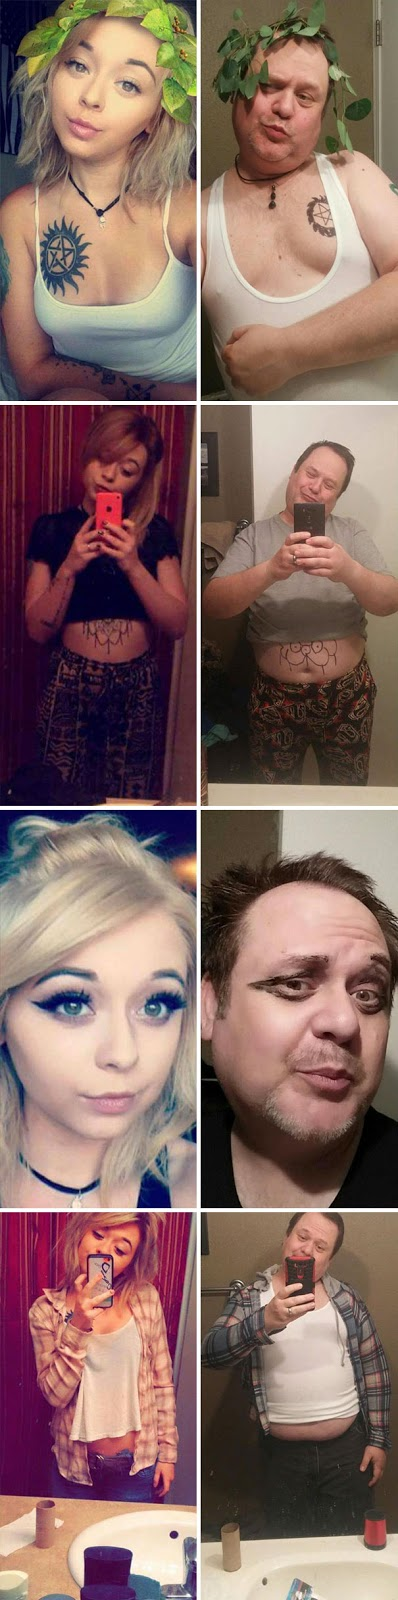 40 Photos Of The Most Hilarious Parents You Will Ever Meet - Dad Trolls His Daughter By Recreating Her Selfies